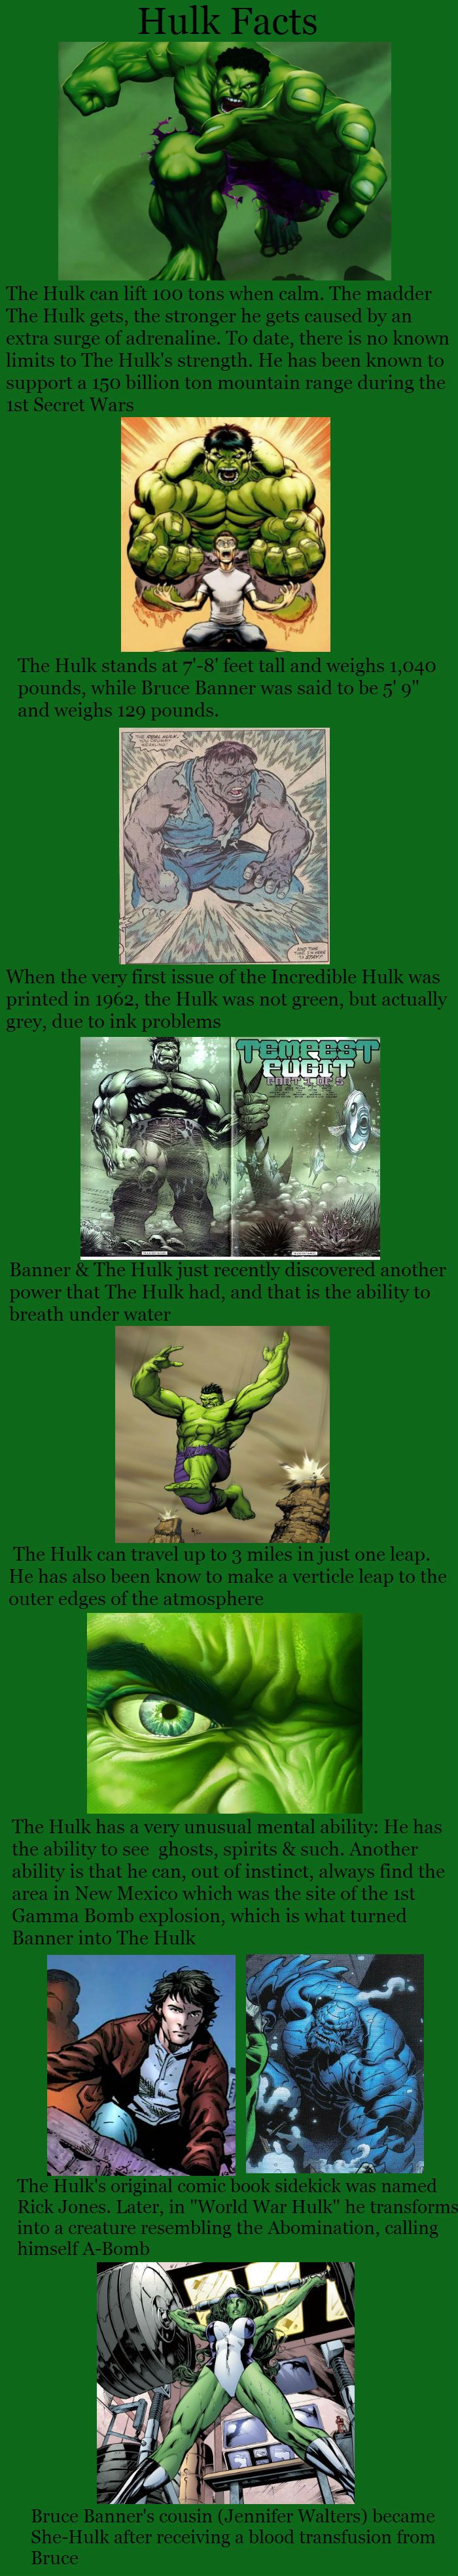 The Hulk Facts  // funny pictures - funny photos - funny images - funny pics - funny quotes - #lol #humor #funnypictures